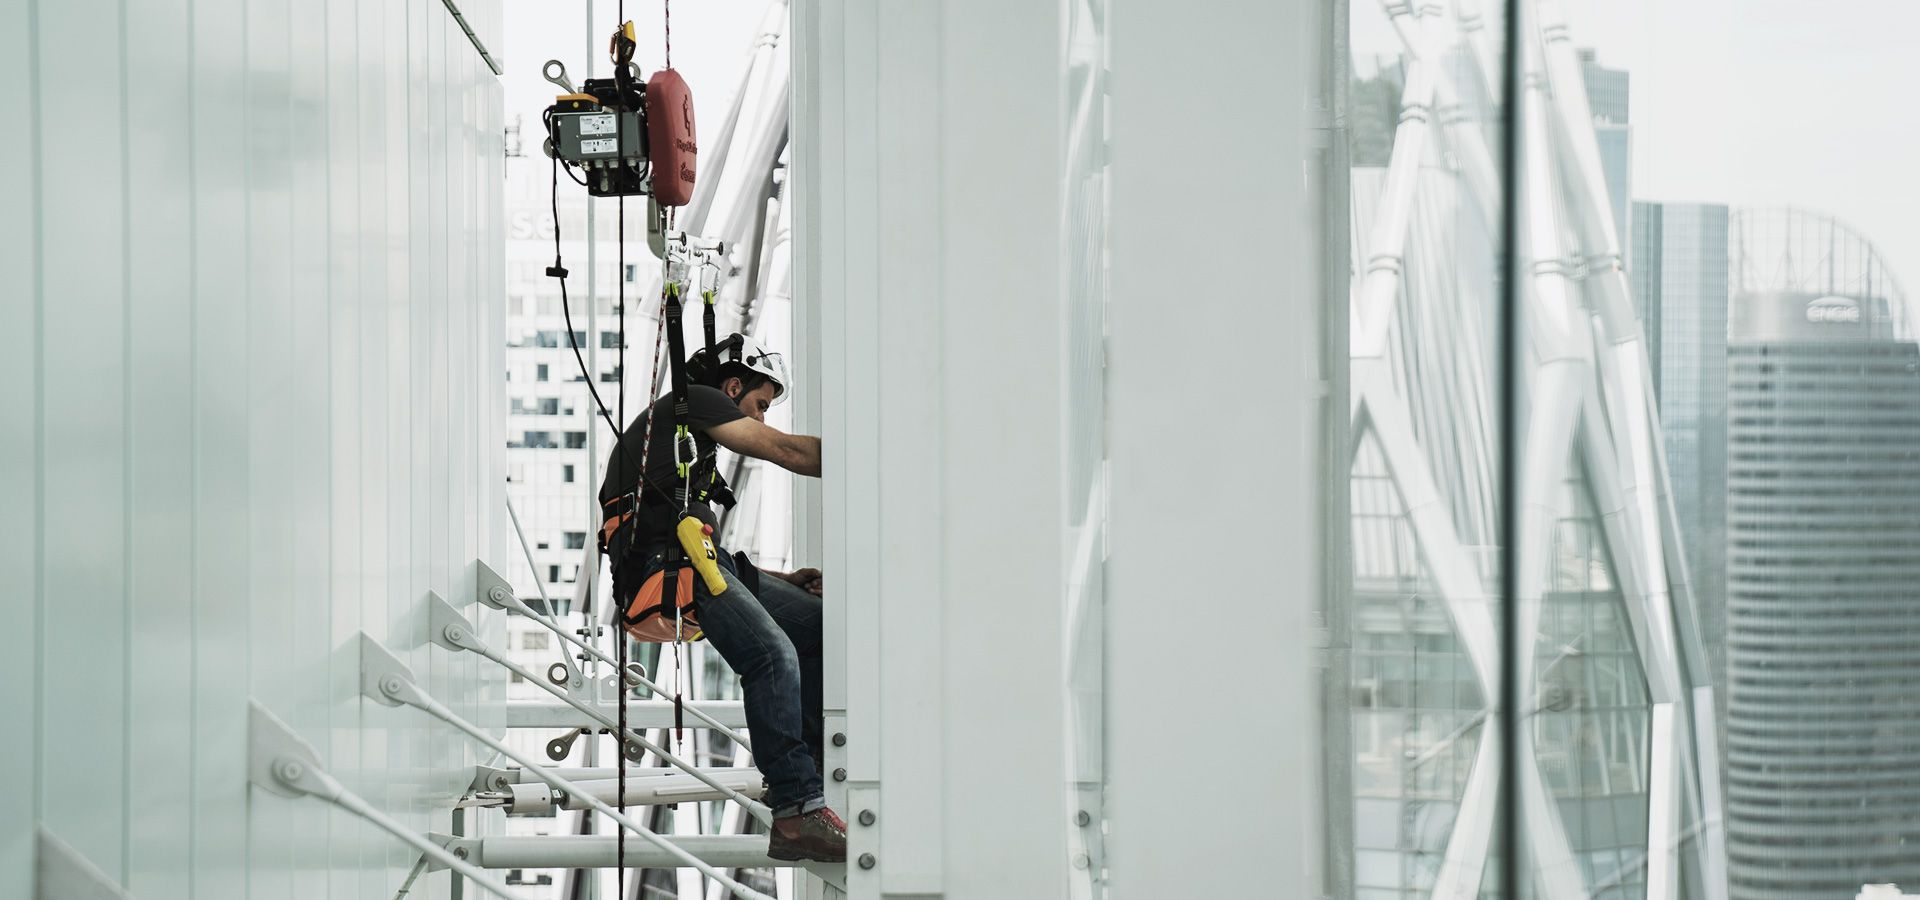 RopeClimber hoist for cleaning glass facade